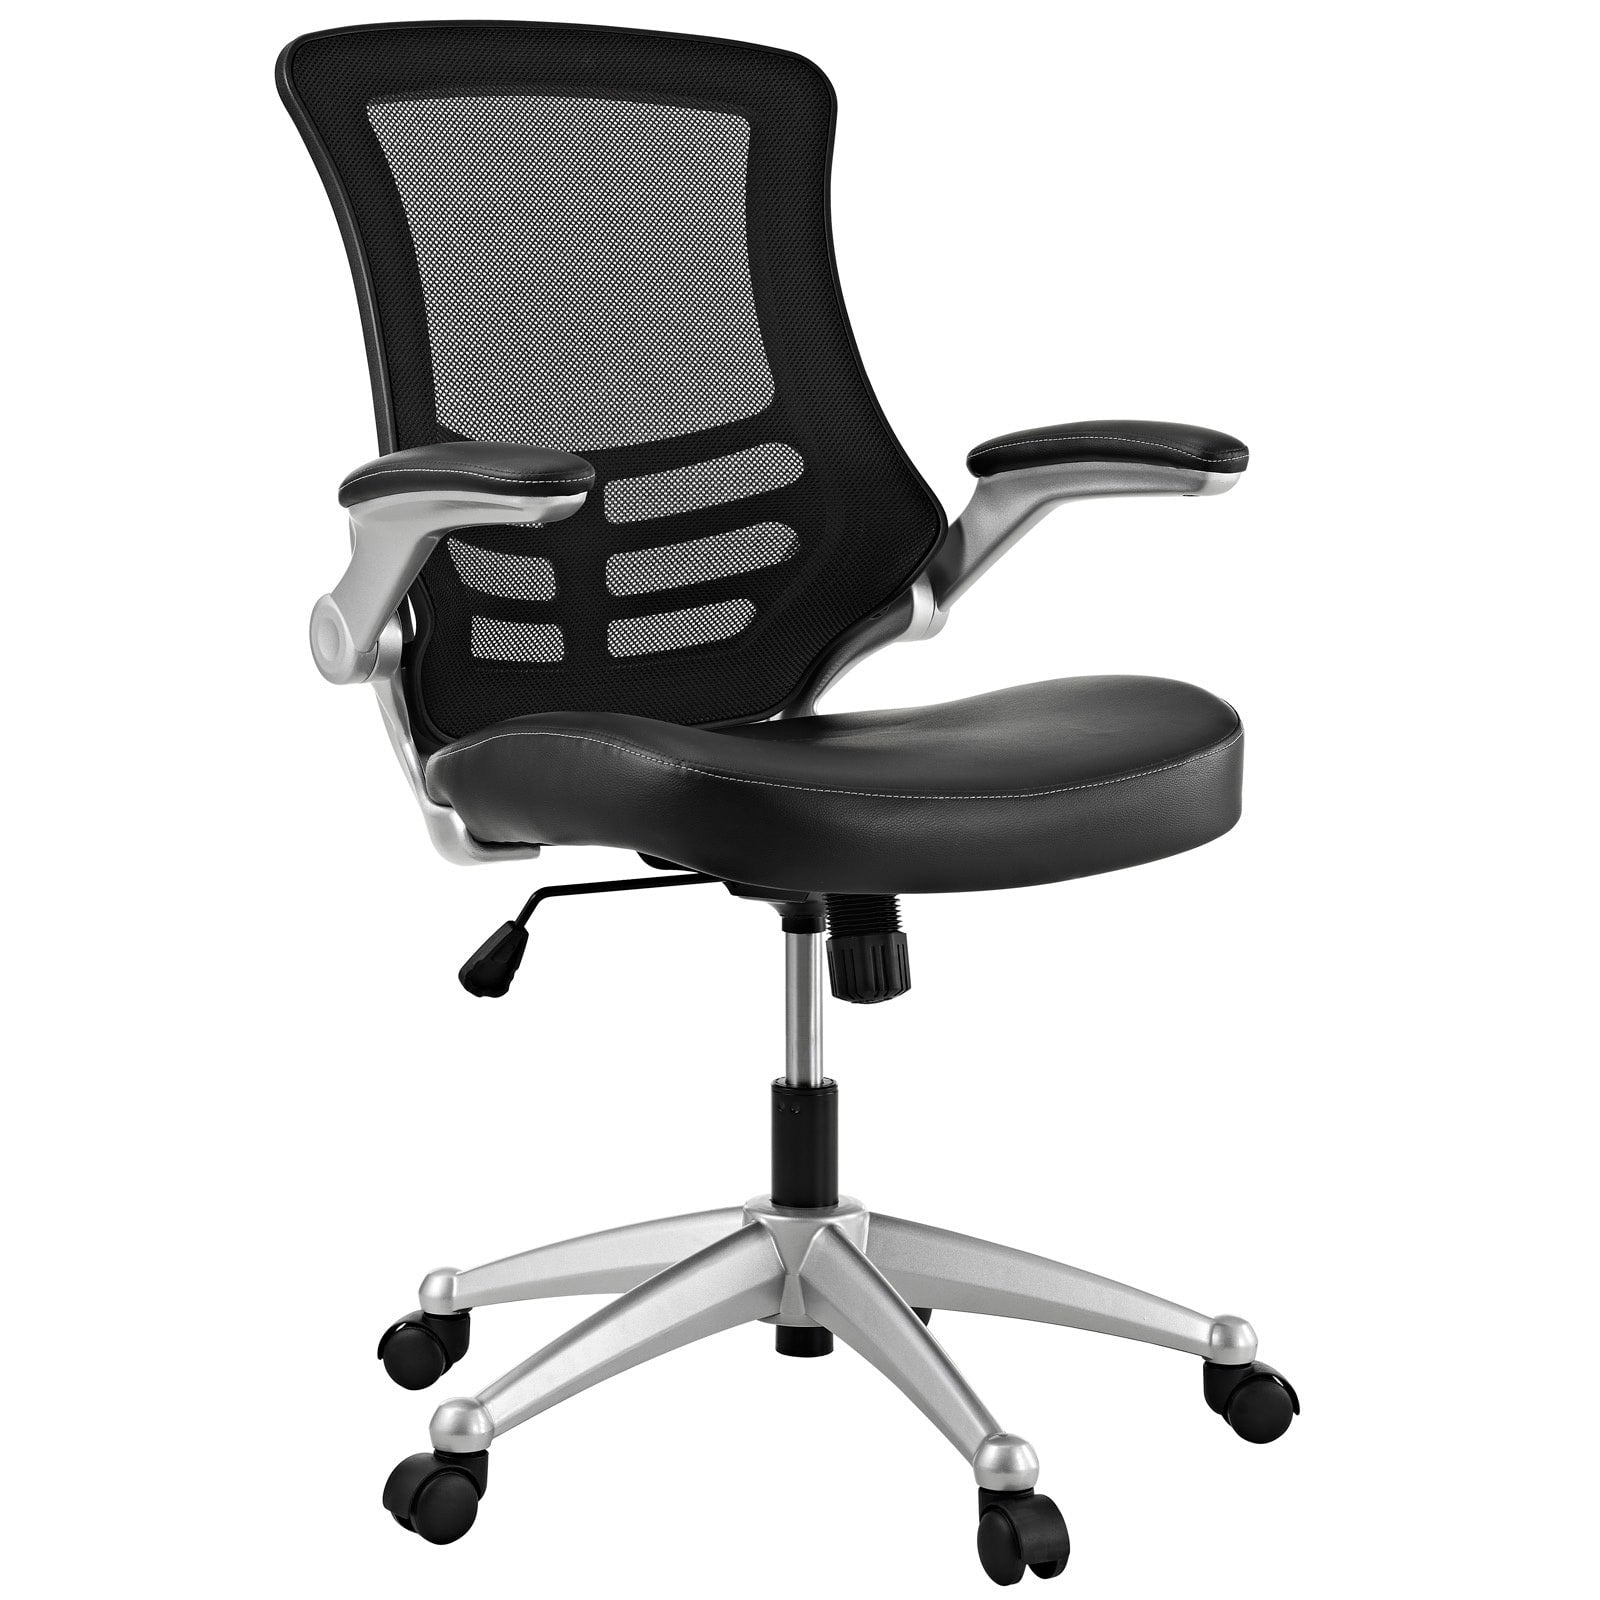 Mesh Back and Leatherette Seat Office Chair